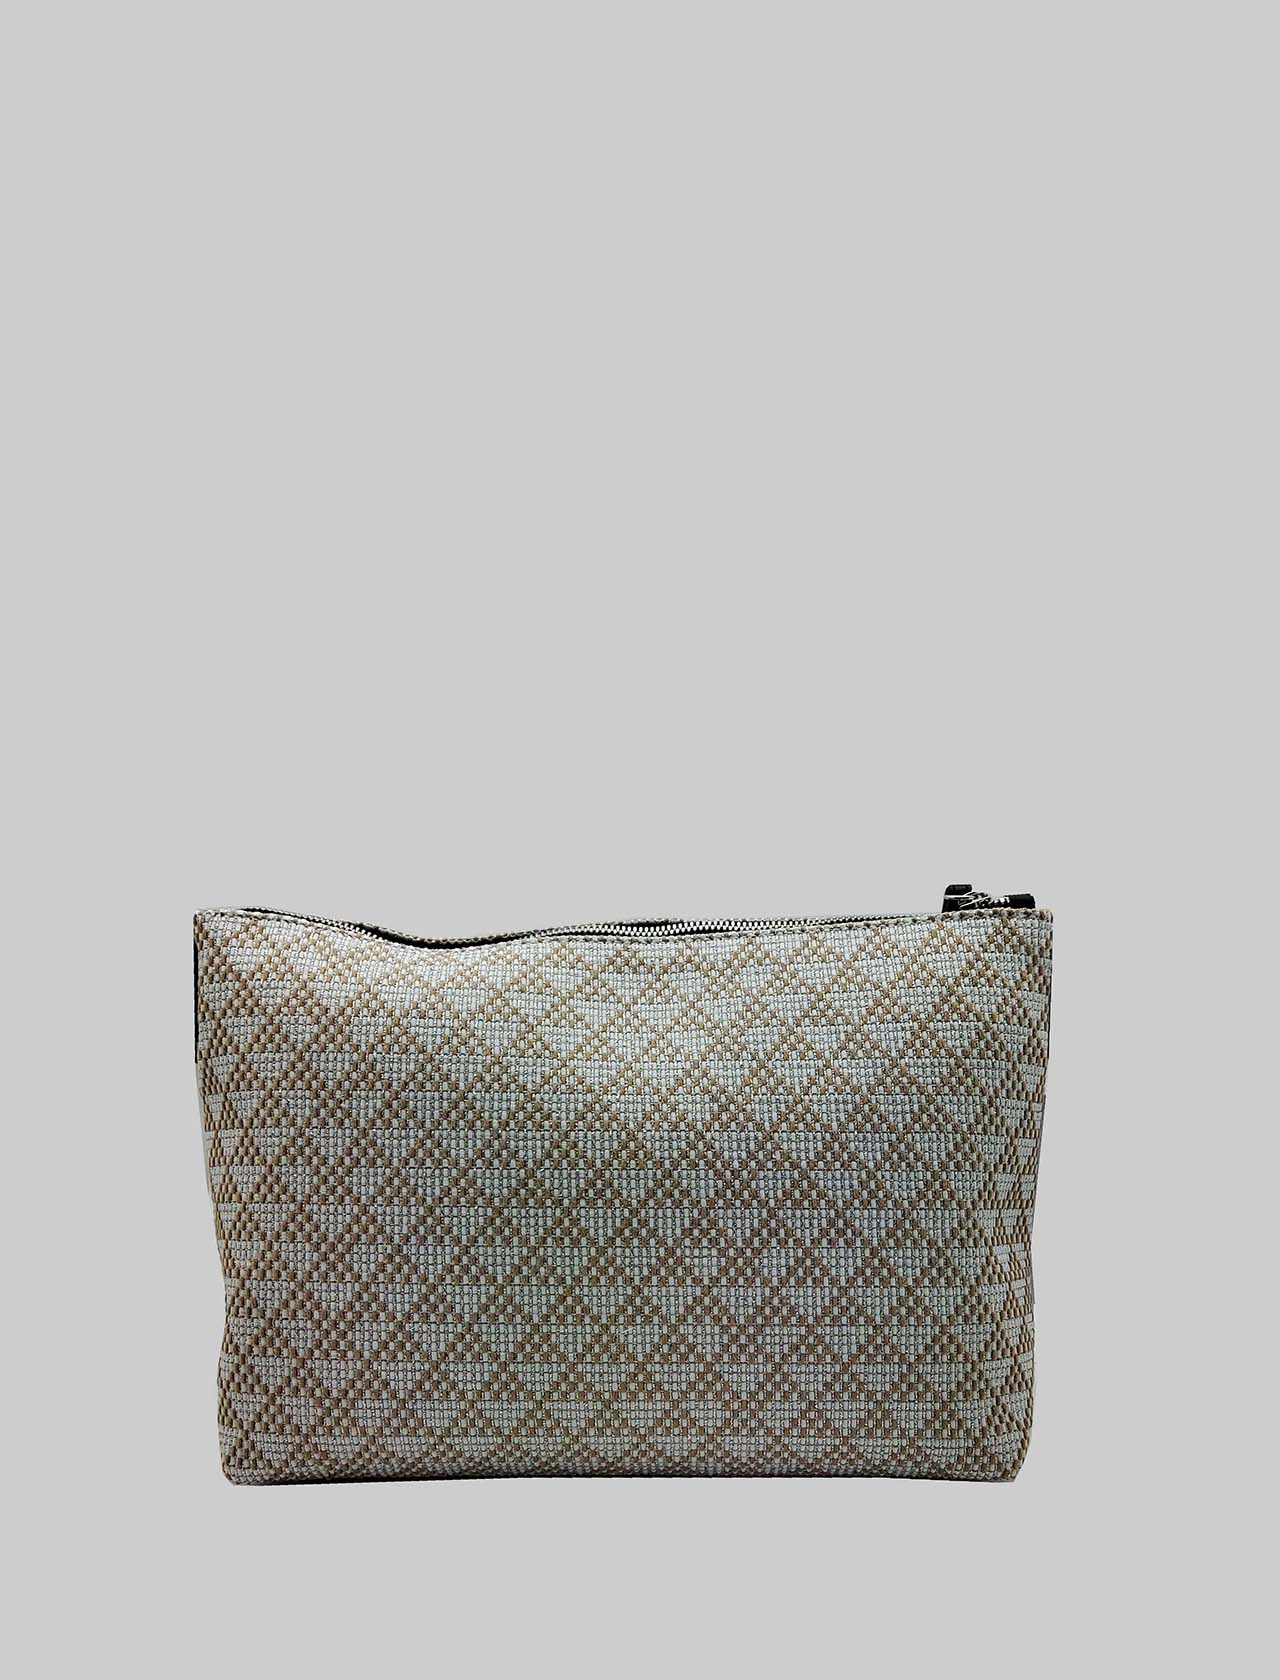 Large Women's Accessories Empty Bags in Beige and Camel Fabric Gianni Chiarini | Bags and backpacks | SB8721009